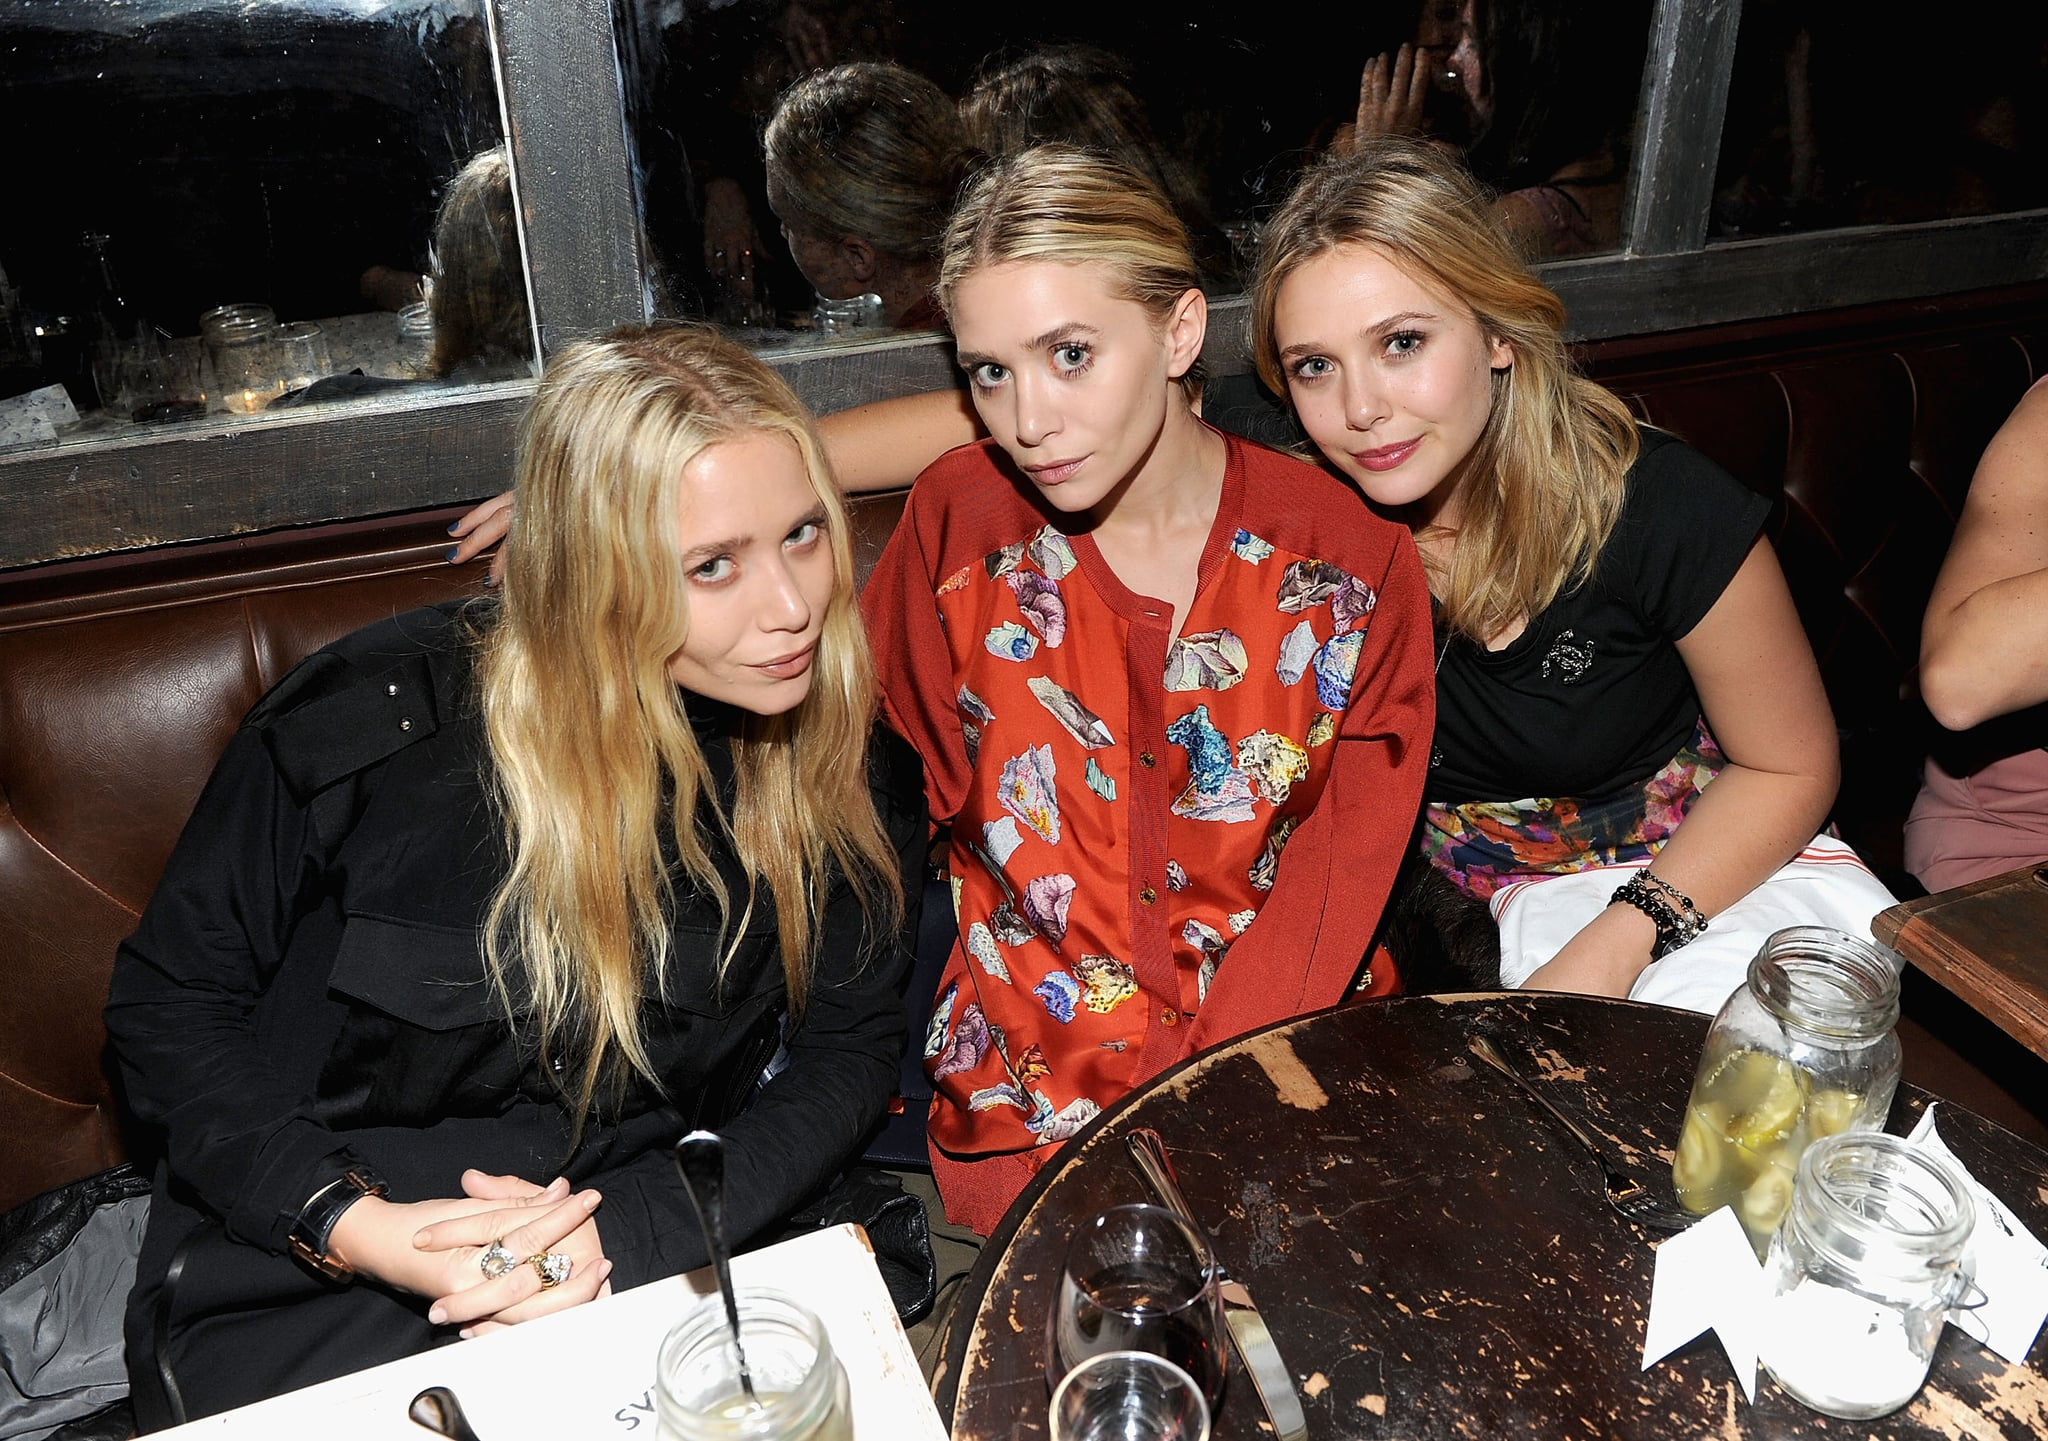 Mary-Kate, Ashley and Elizabeth Olsen had dinner together in NYC.